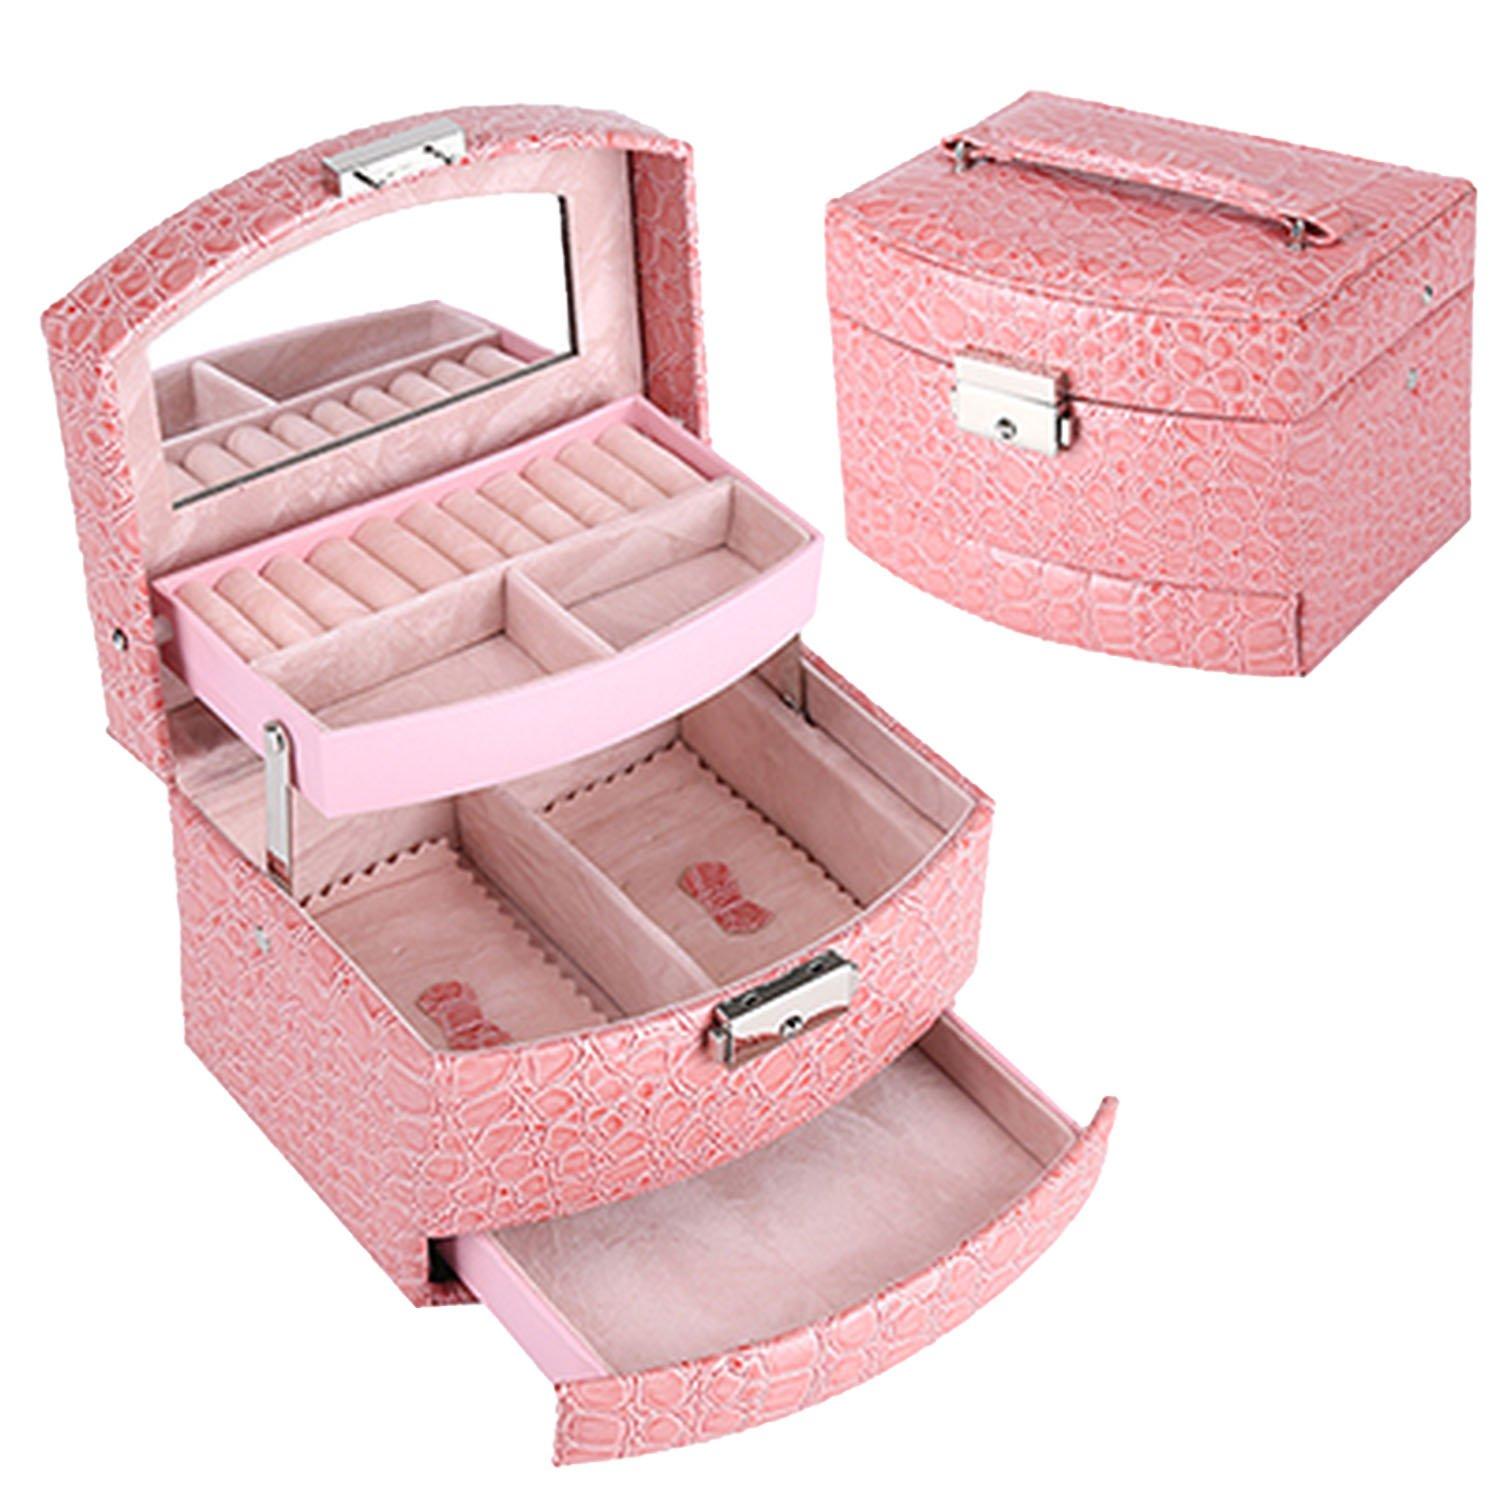 Collocation-Online Jewelry Leather Makeup Organizer Storage Box Container Case Gift Box Women Cosmetic Casket,Pink